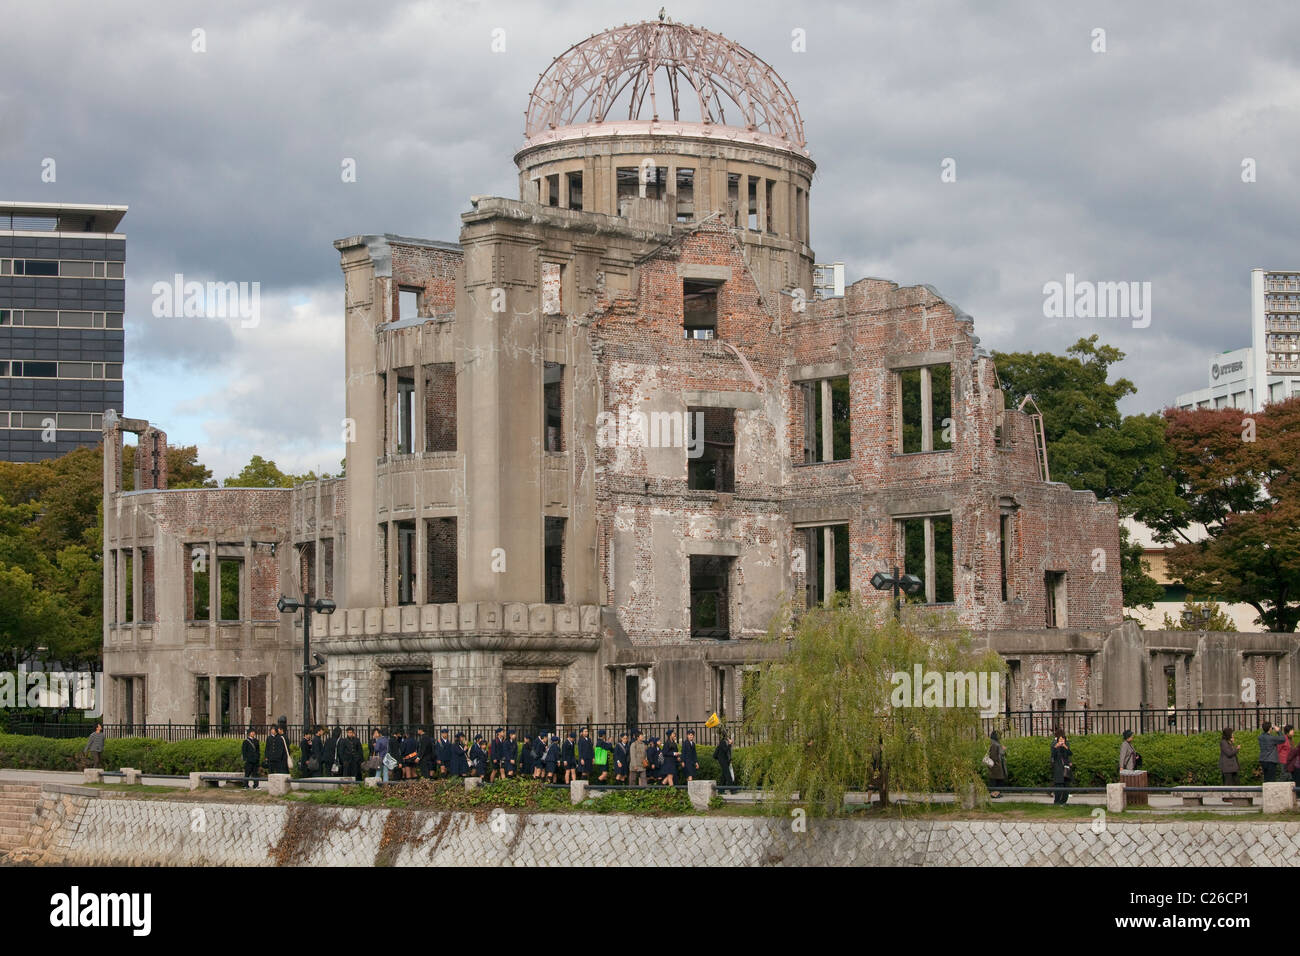 Genbaku Dome (Atomic Bomb Dome) with students in foreground, Hiroshima Peace Memorial Park, Hiroshima, Japan. - Stock Image